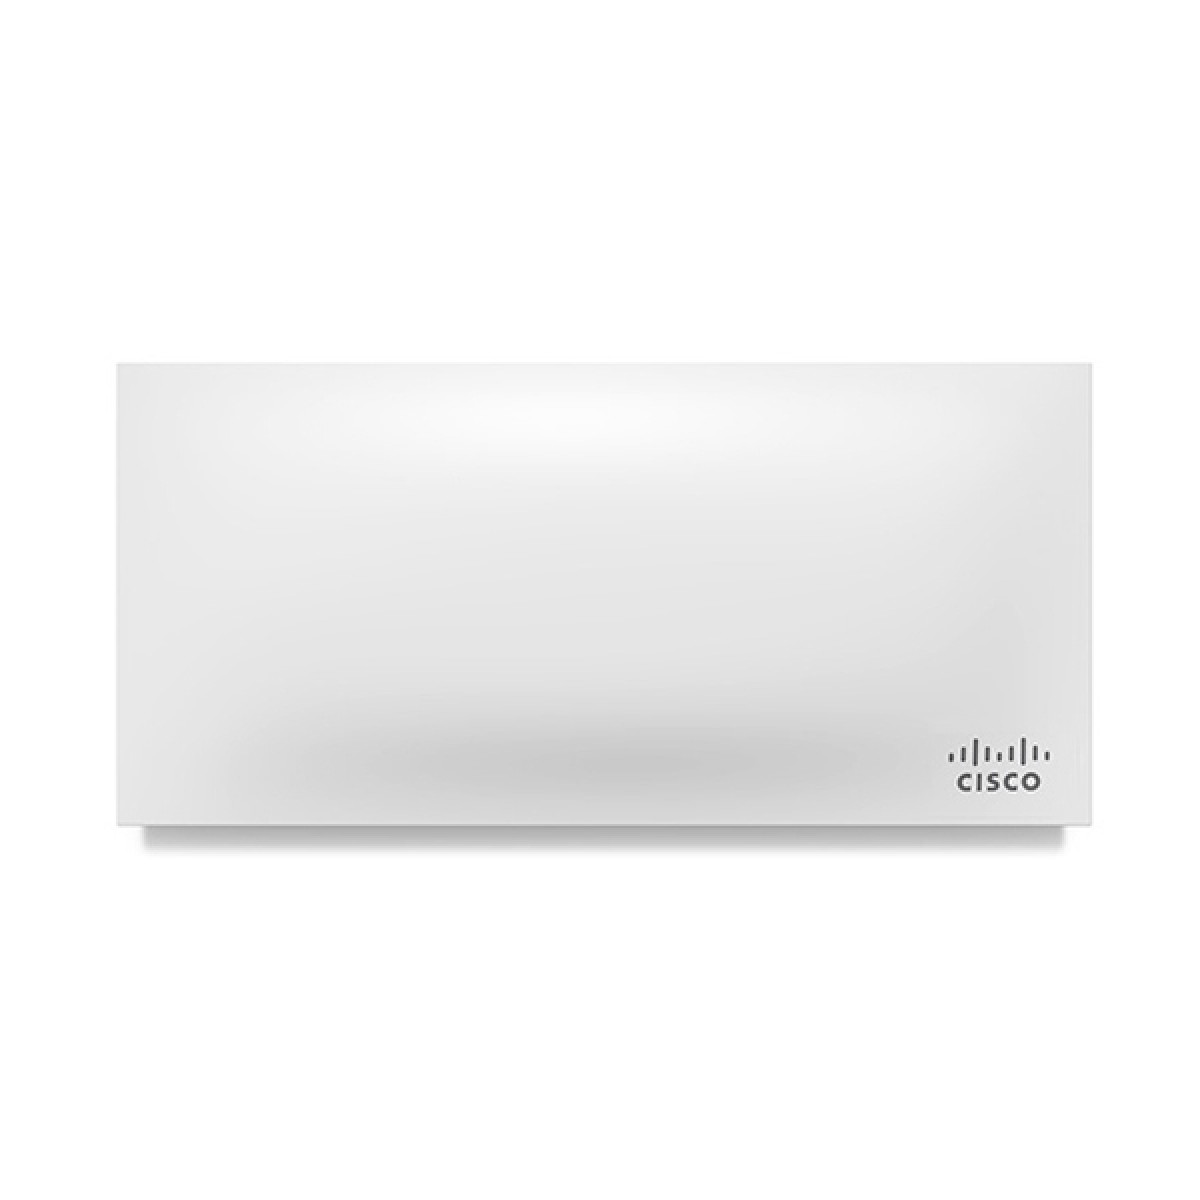 Access Point Meraki Cisco MR33 Cloud 802.11ac wireless